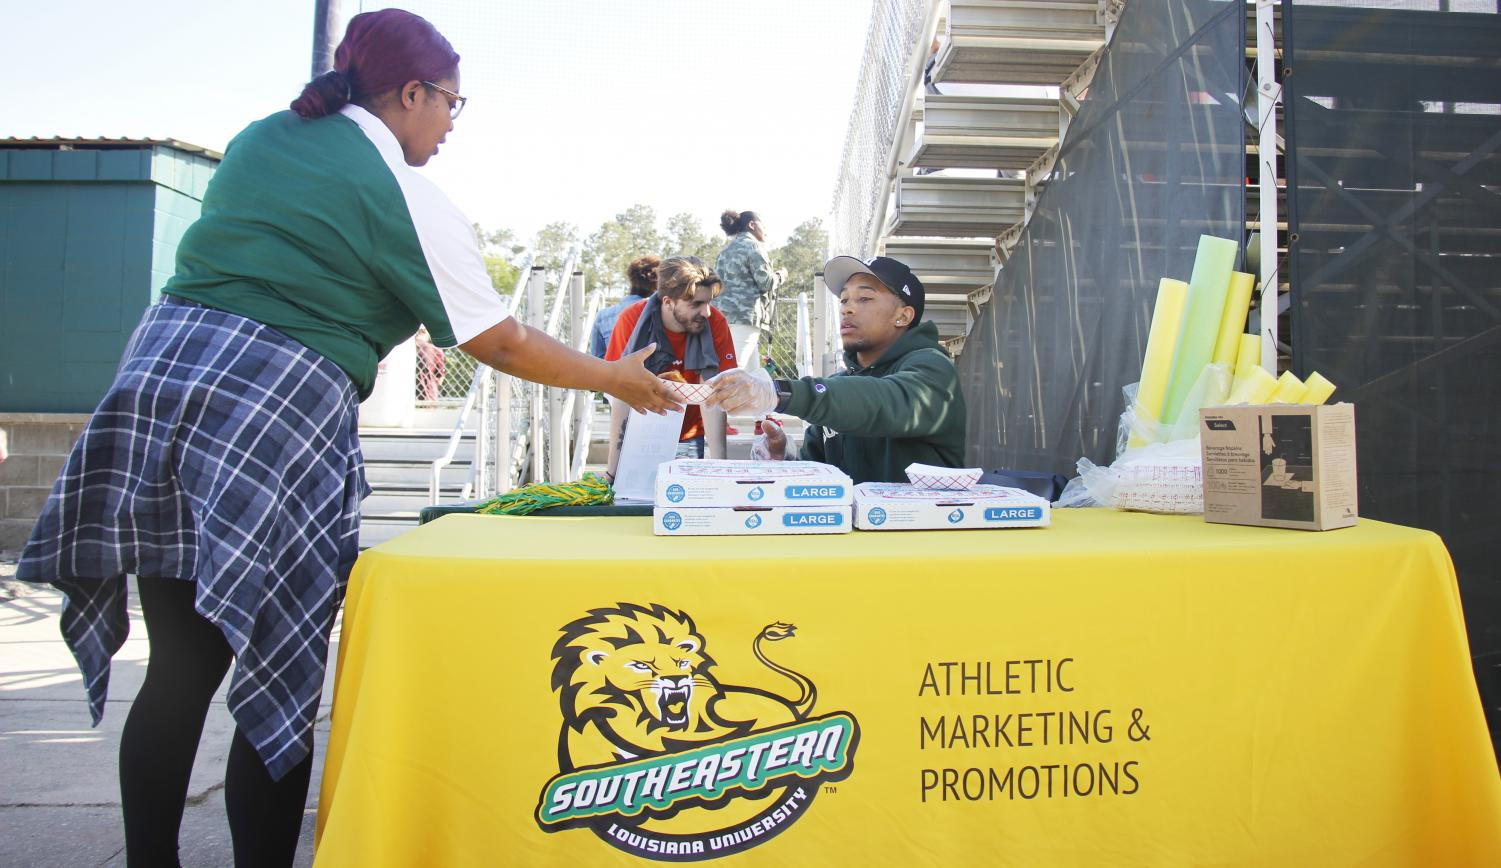 """Flood the Field,"" a promotion event for the Lady Lions softball game, is an athletics marketing classic. With events like these, the first students to arrive at the game get free pizza and a T-shirt. With proper advertising and promotions, athletics aims to engage with both fans and people who are not interested in sports."